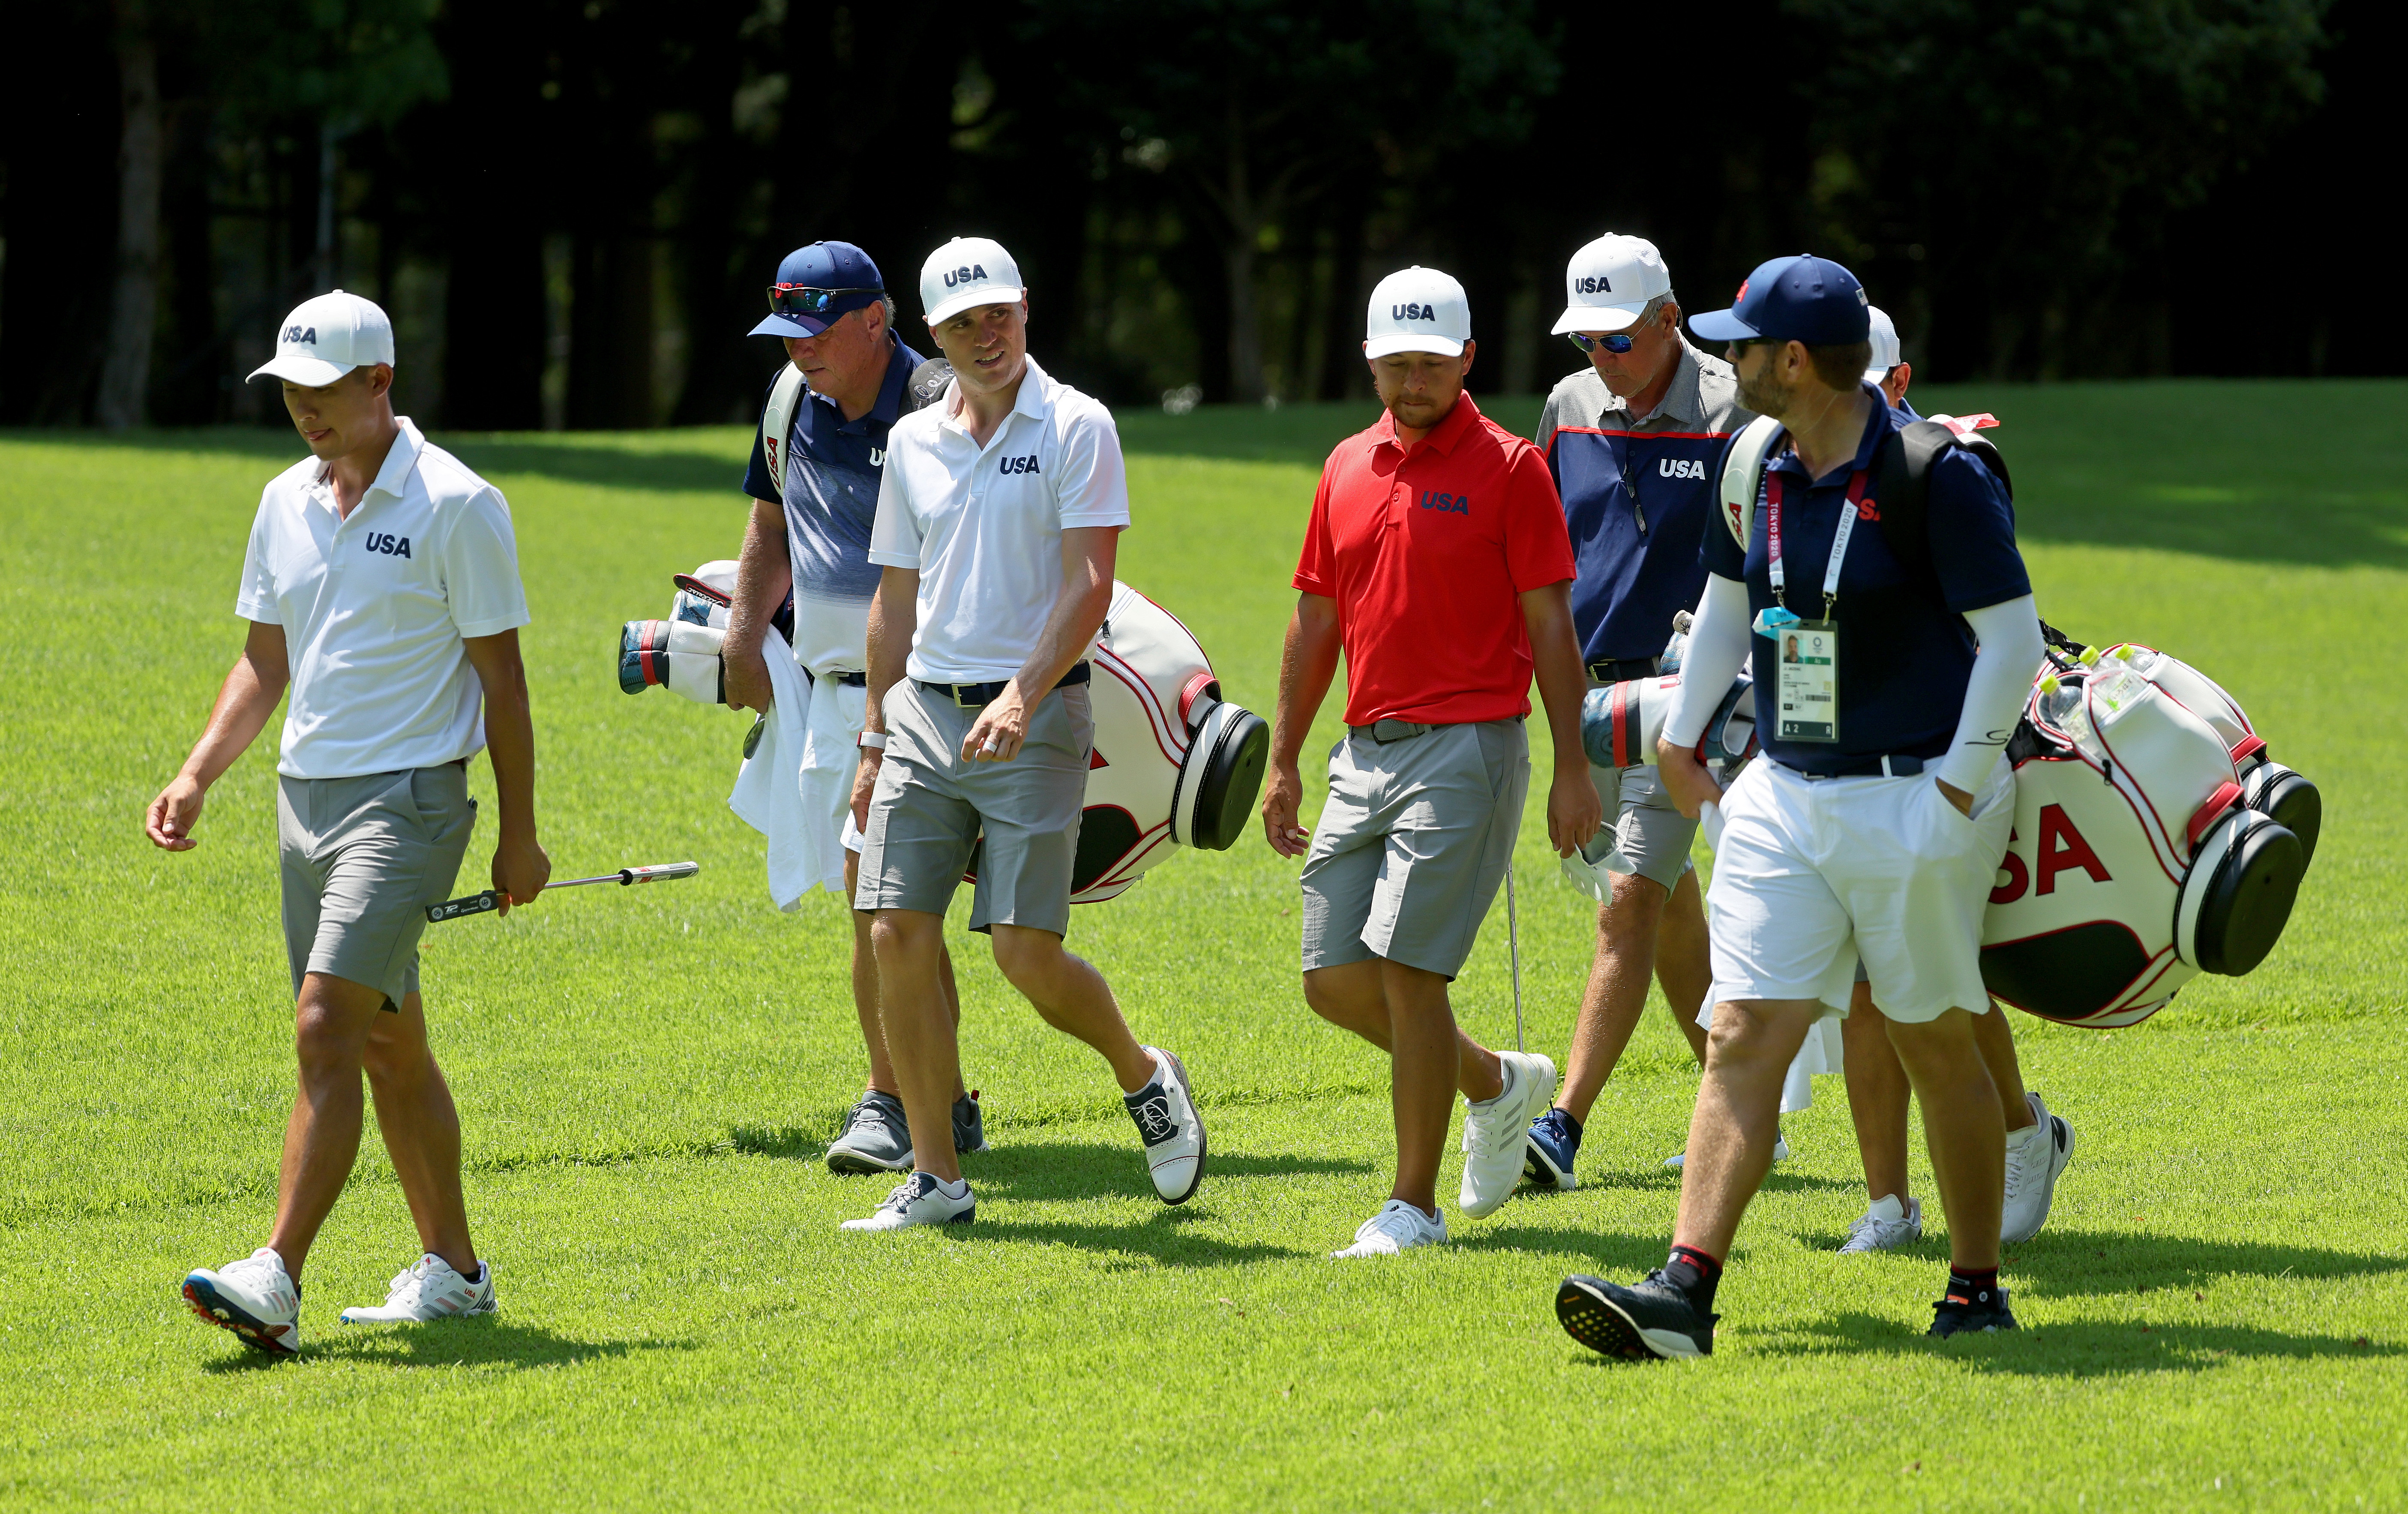 Xander Schauffele, Justin Thomas, and Collin Morikawa of Team USA play during a practice round at Kasumigaseki Country Club ahead of the Tokyo Olympic Games on July 28, 2021 in Tokyo, Japan.